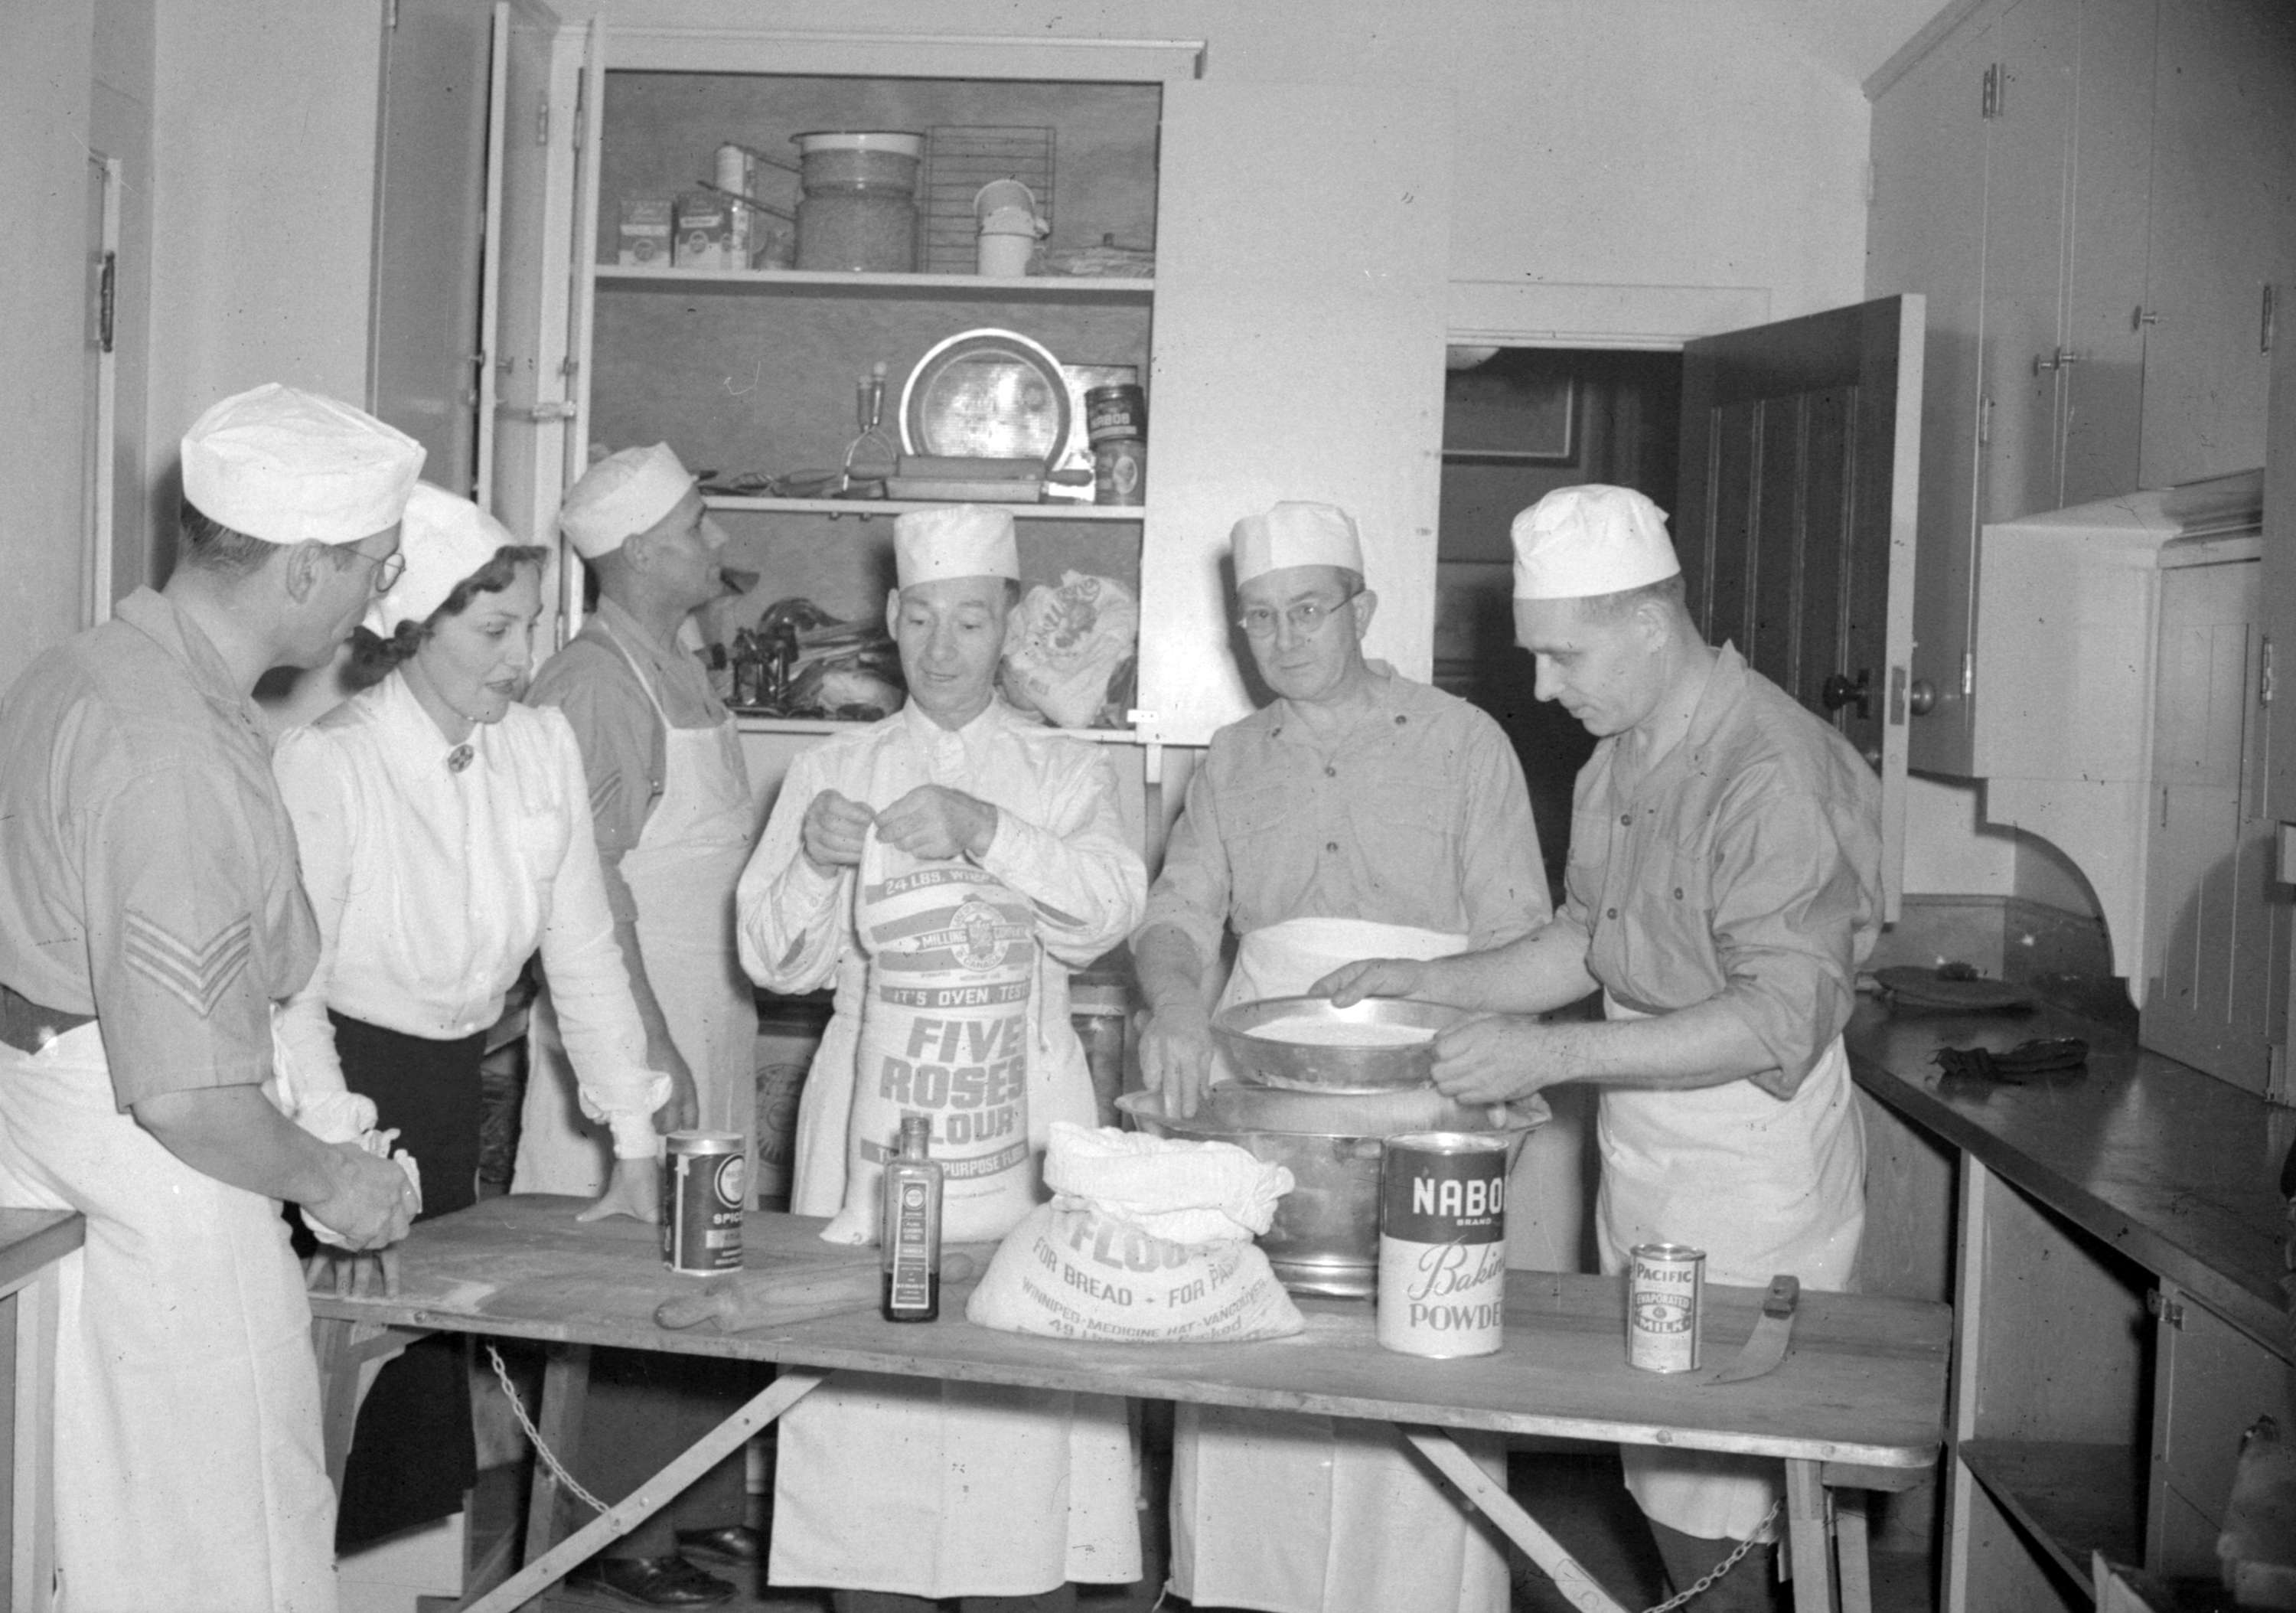 ... - [Group of people, some in military uniform, in a kitchen baking